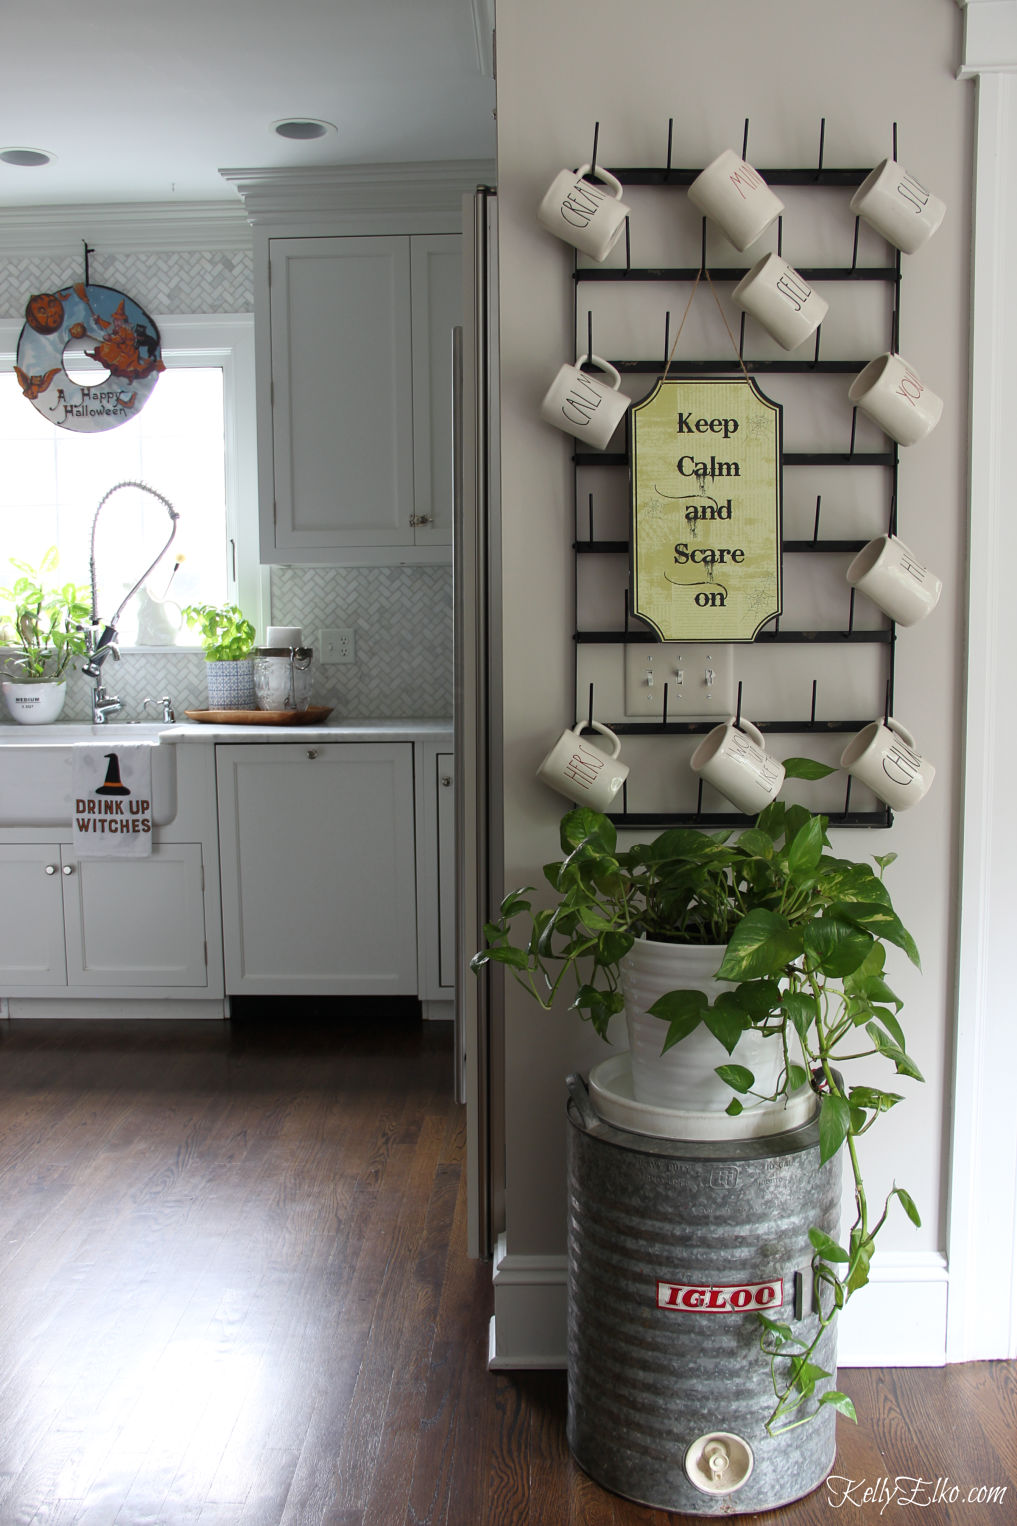 Halloween home tour - love the huge bottle drying rack and Halloween signs kellyelko.com #halloween #halloweendecor #halloweendecorations #farmhousestyle